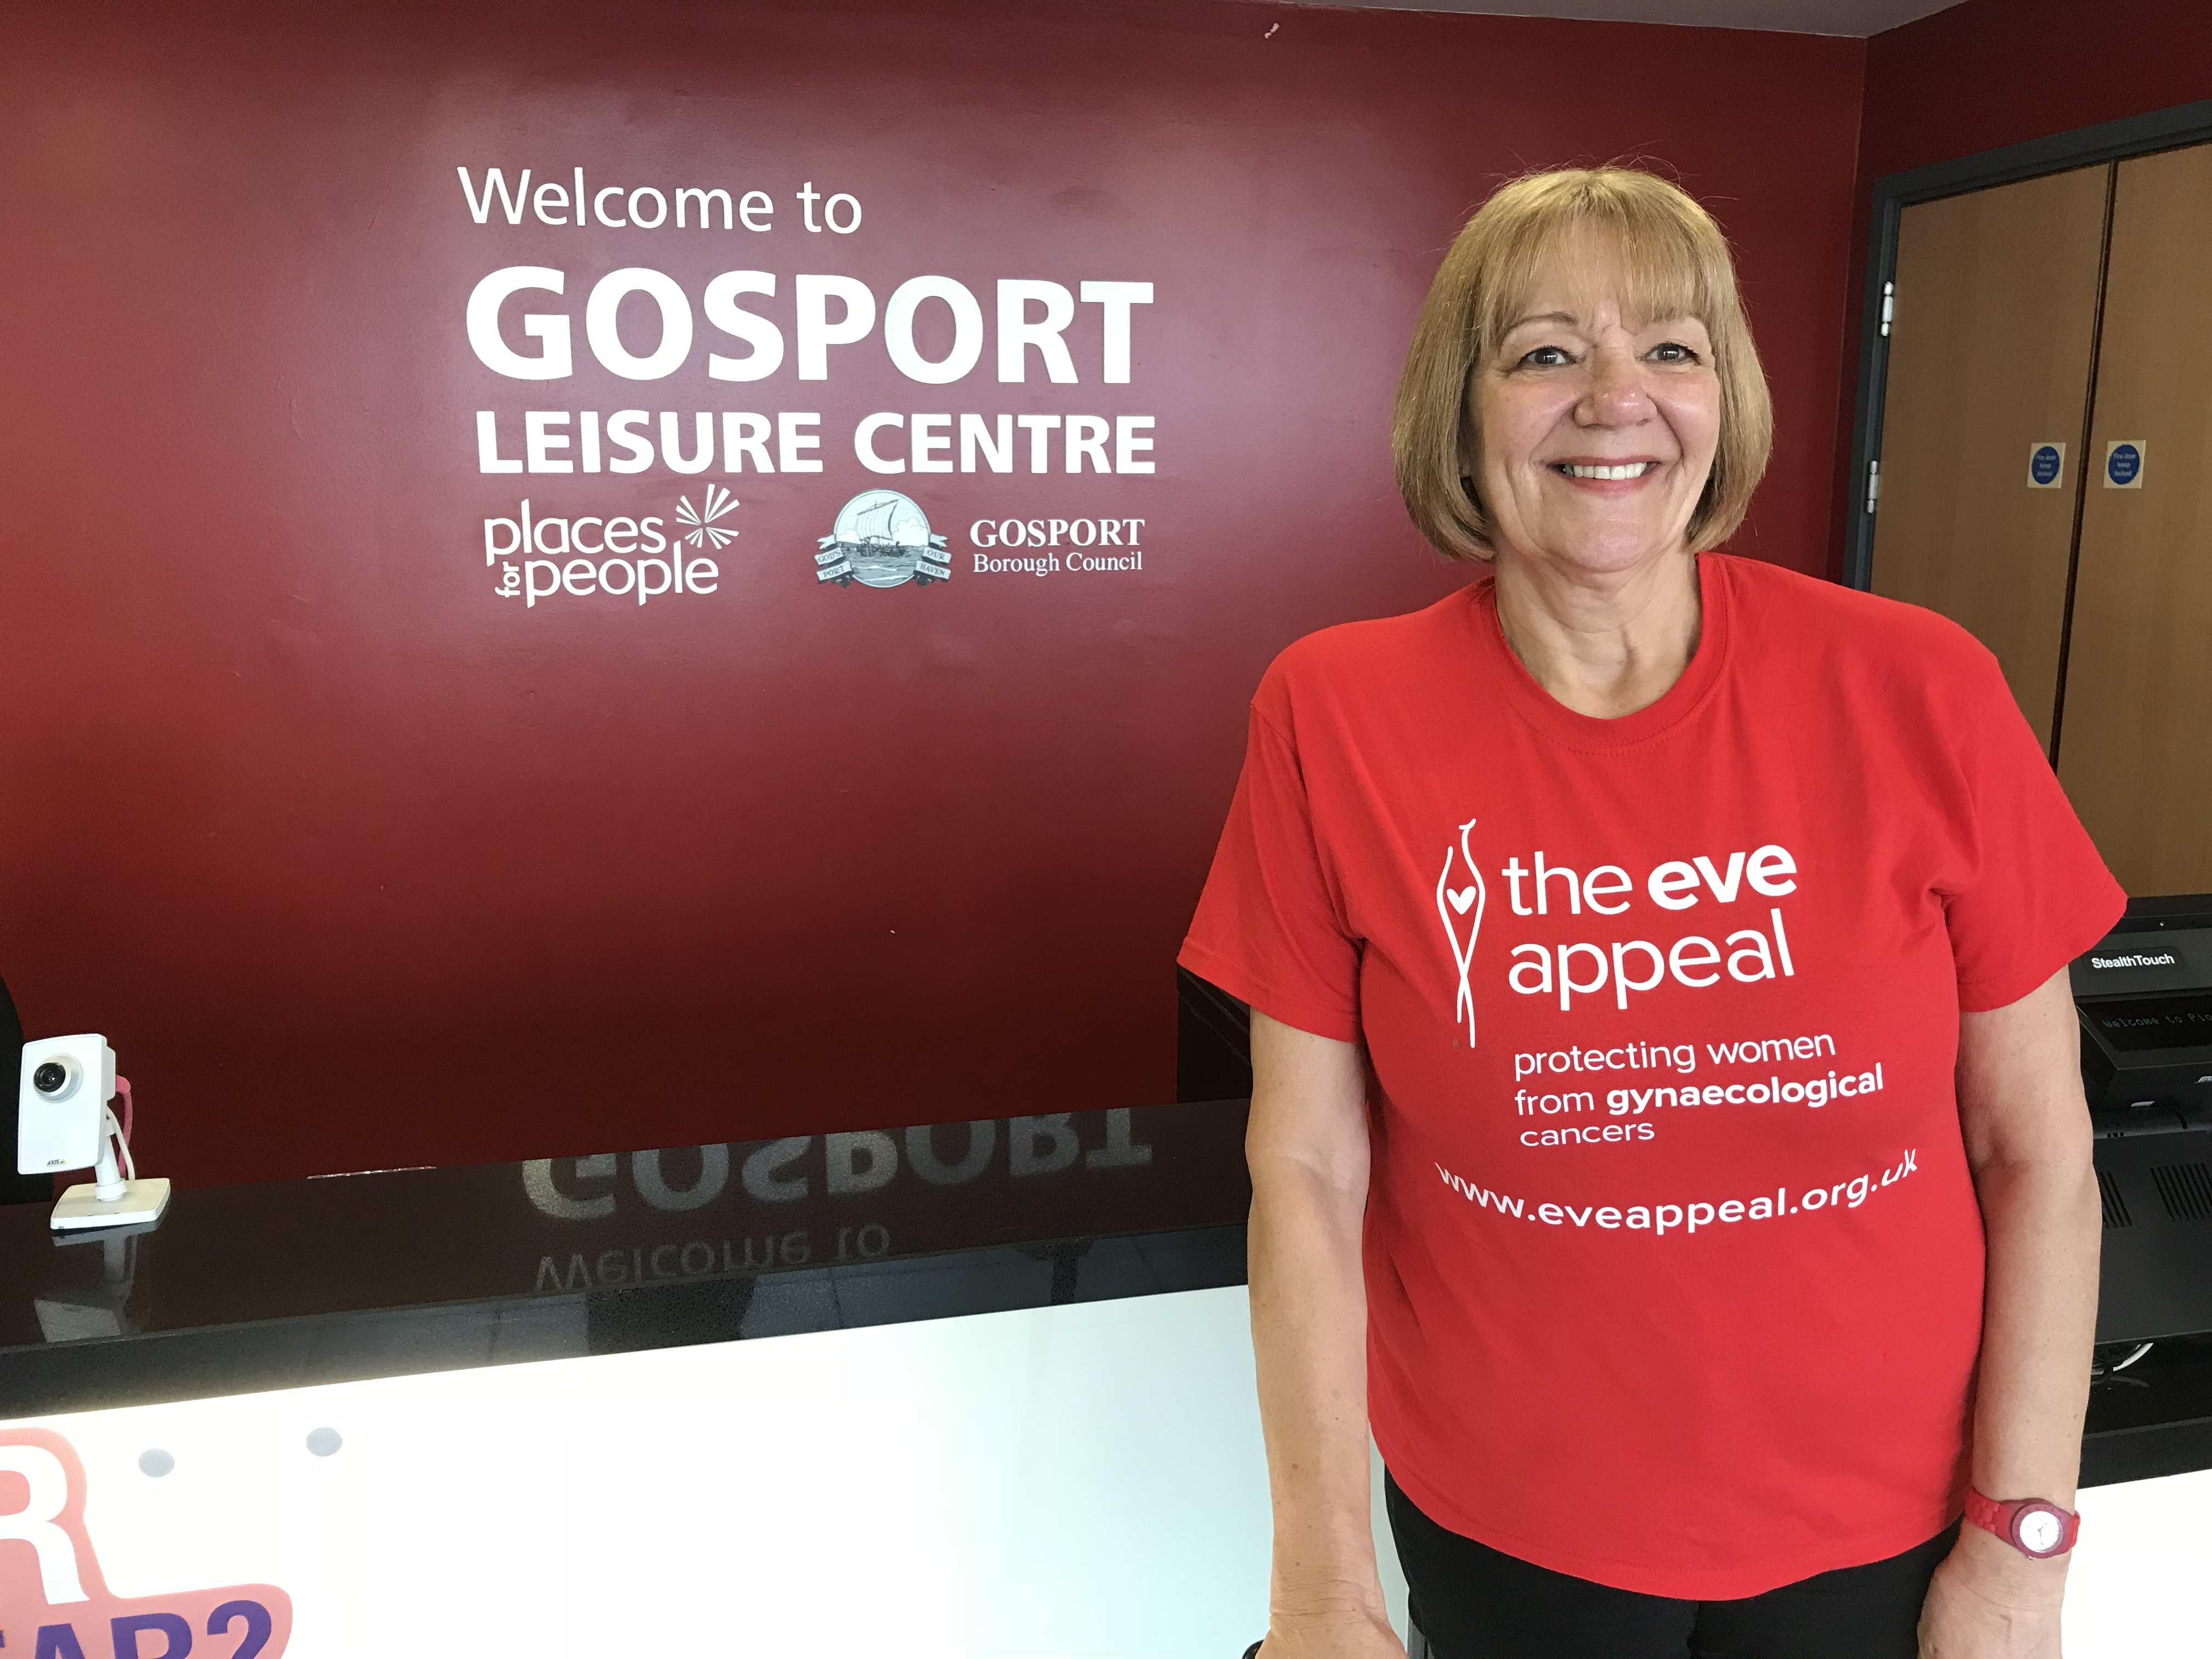 gill standing in front of gosport leisure centre sign